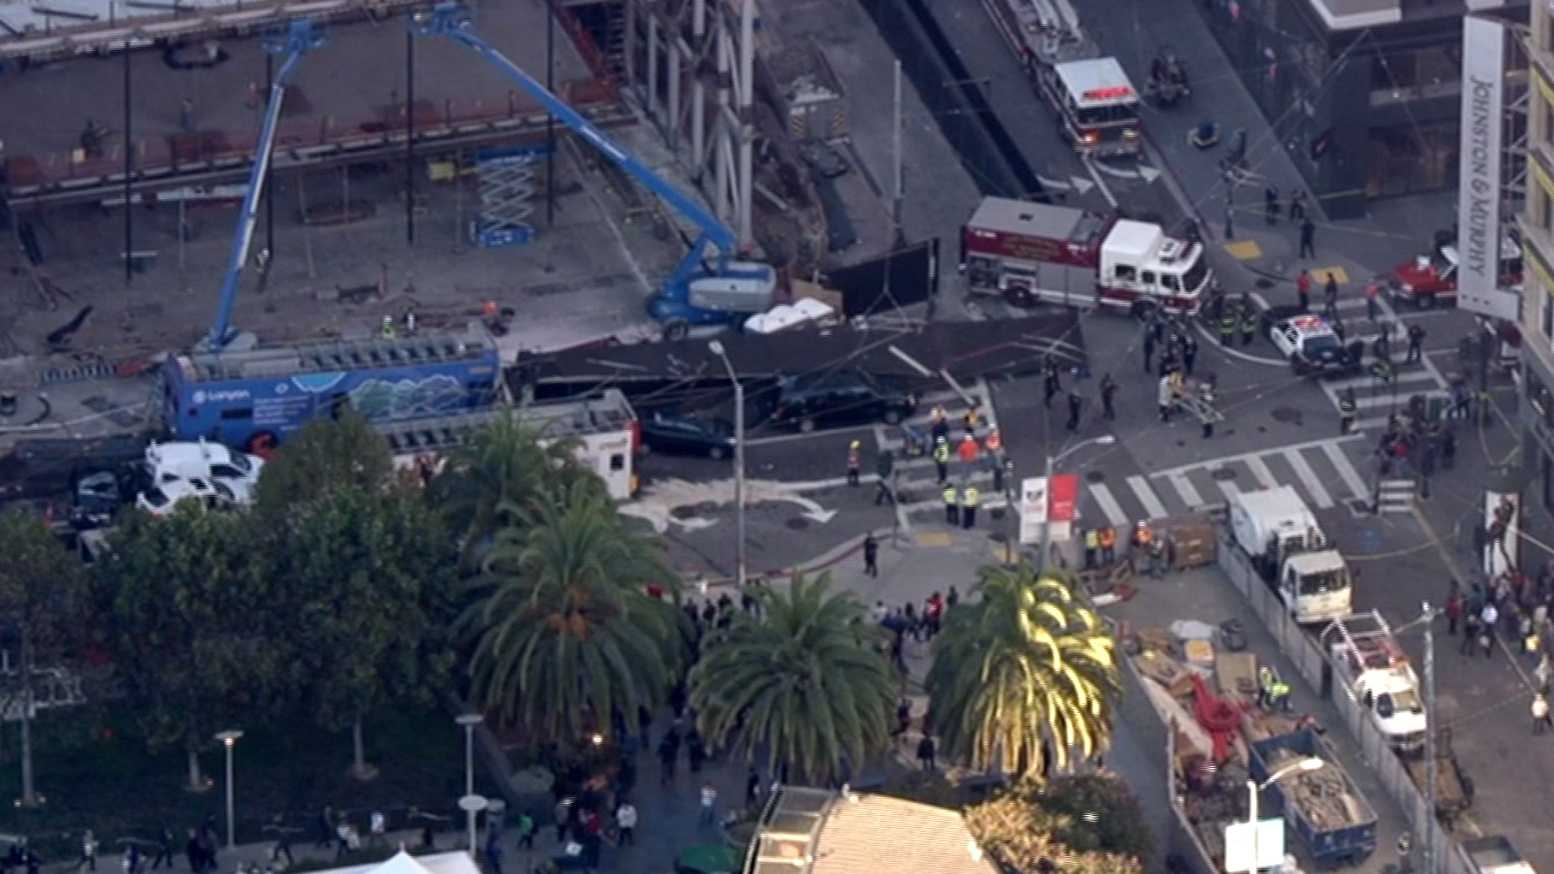 A tour bus crashed Friday, Nov. 13, 2015, at the intersection of Stockton and Post at Union Square in San Francisco.